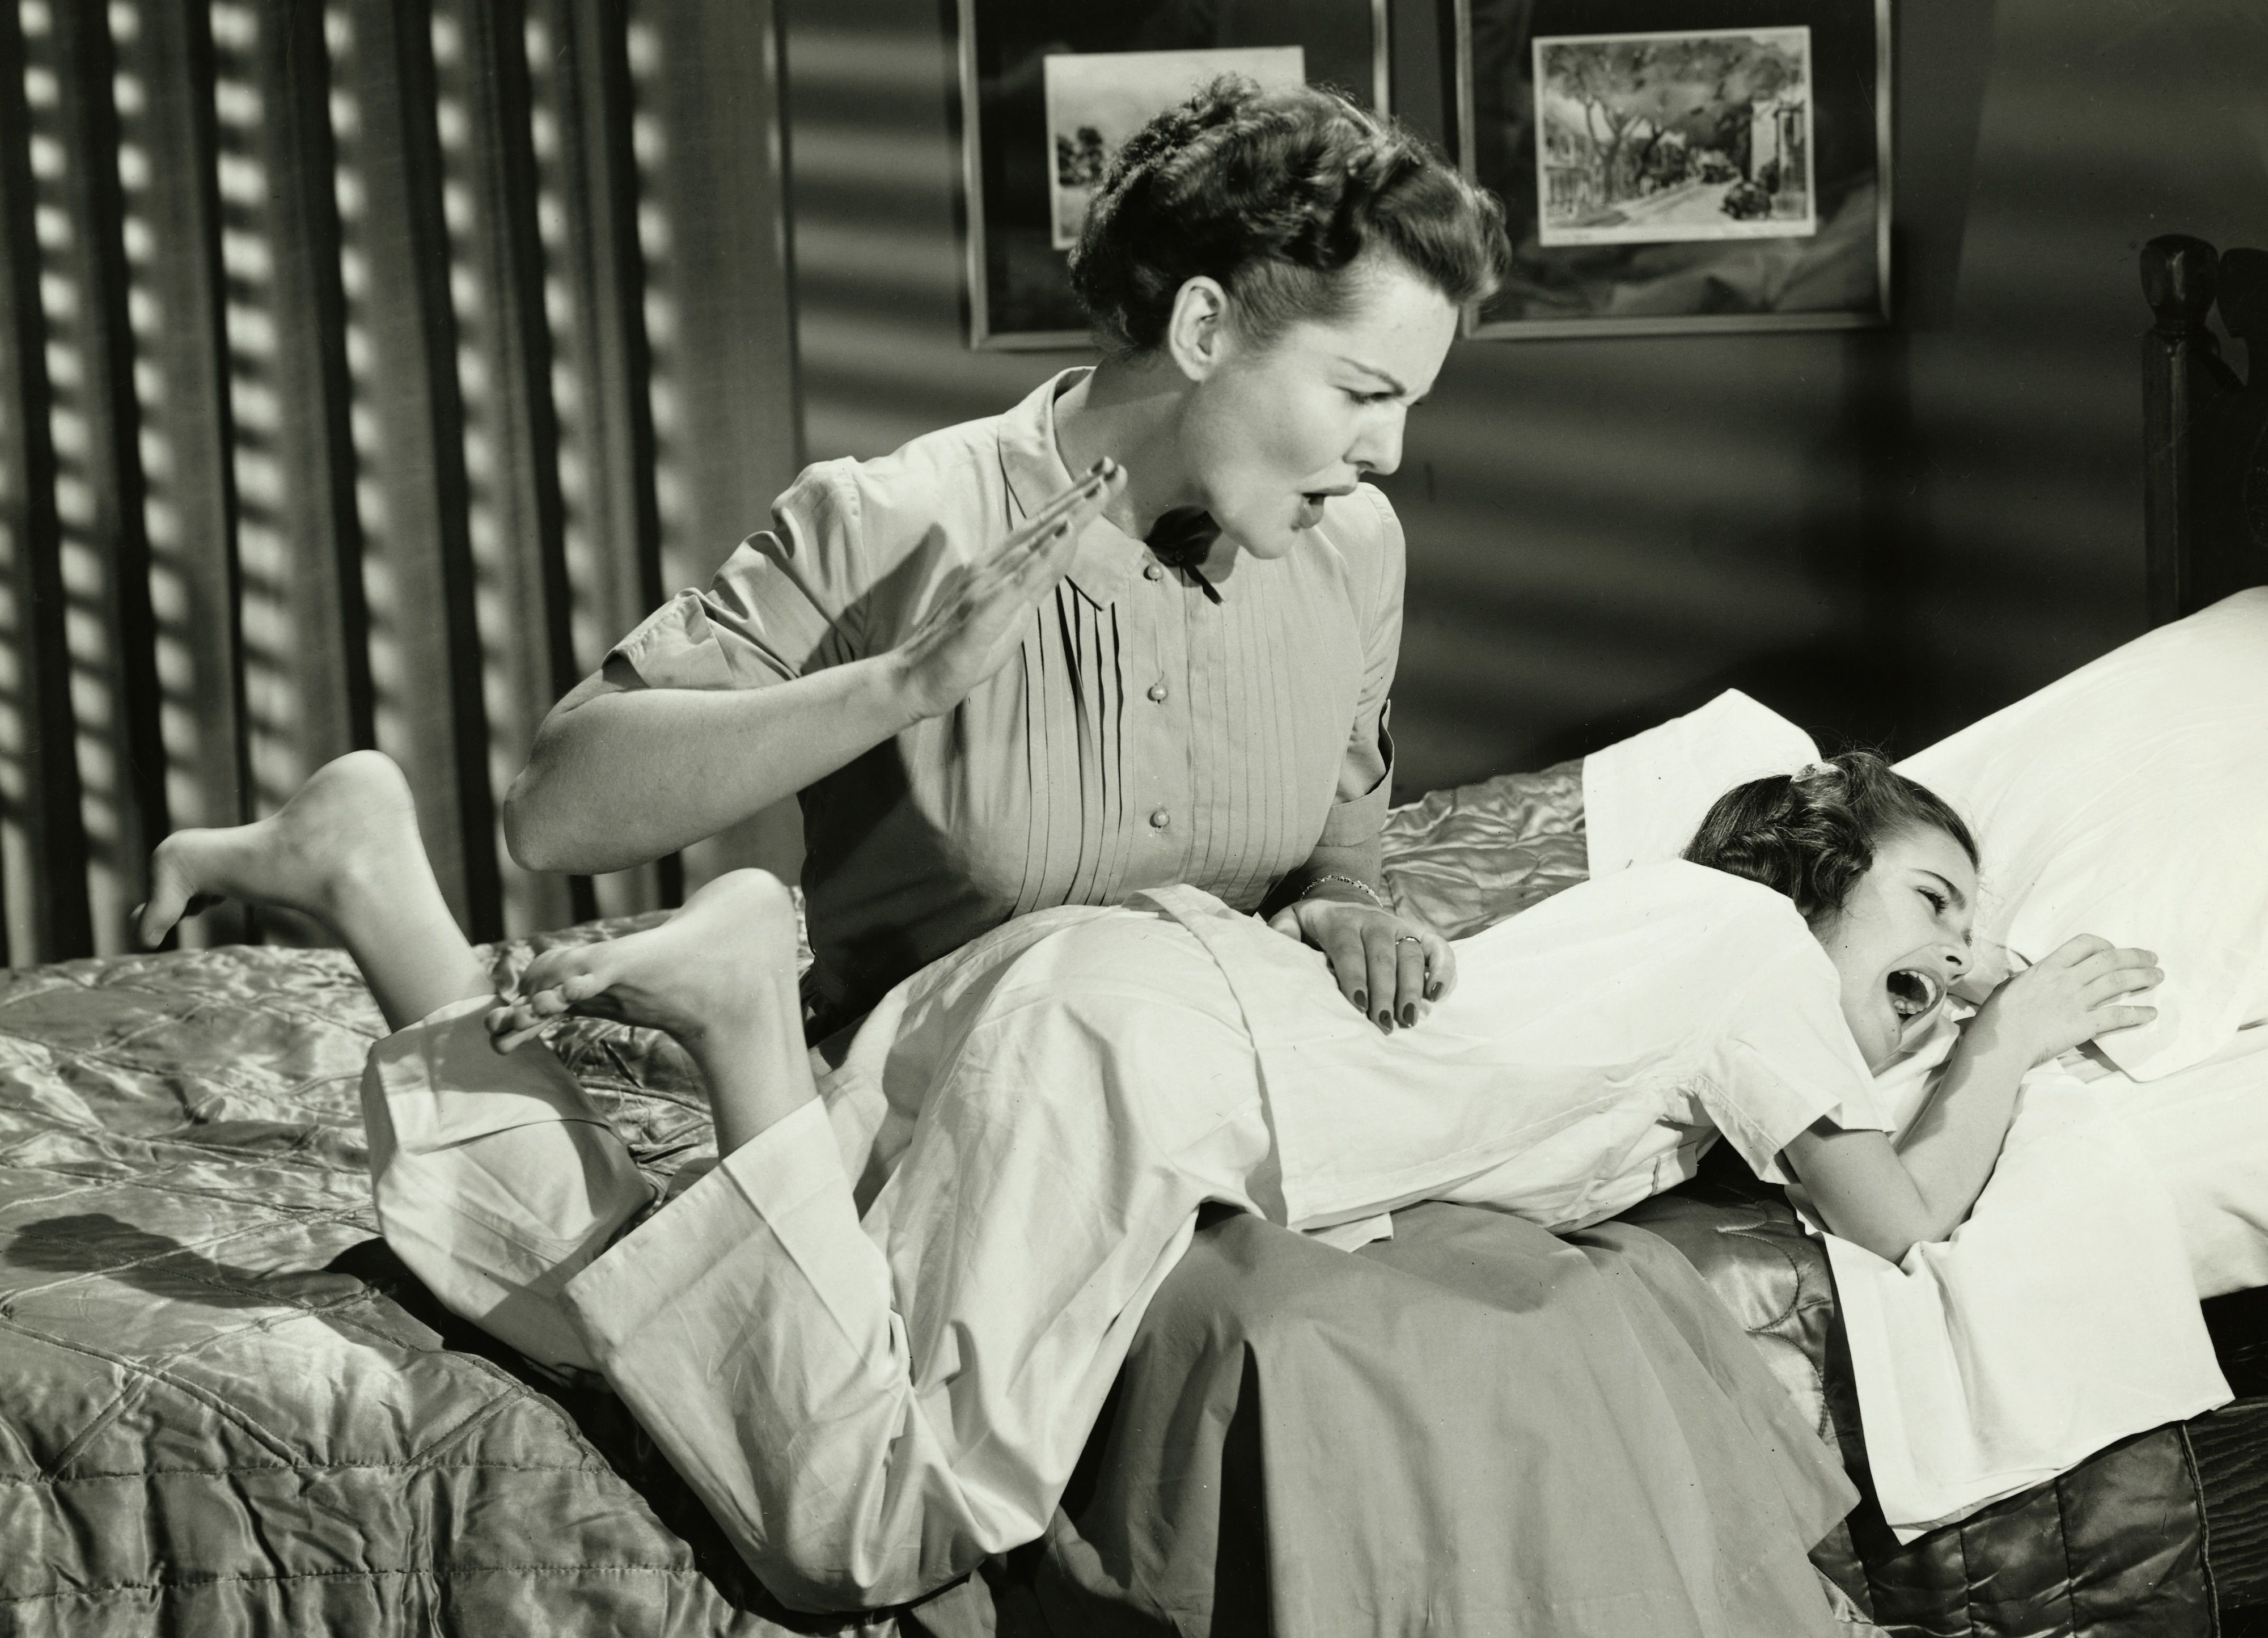 Study Proves Spanking Hurts Your Kids' Mental Health